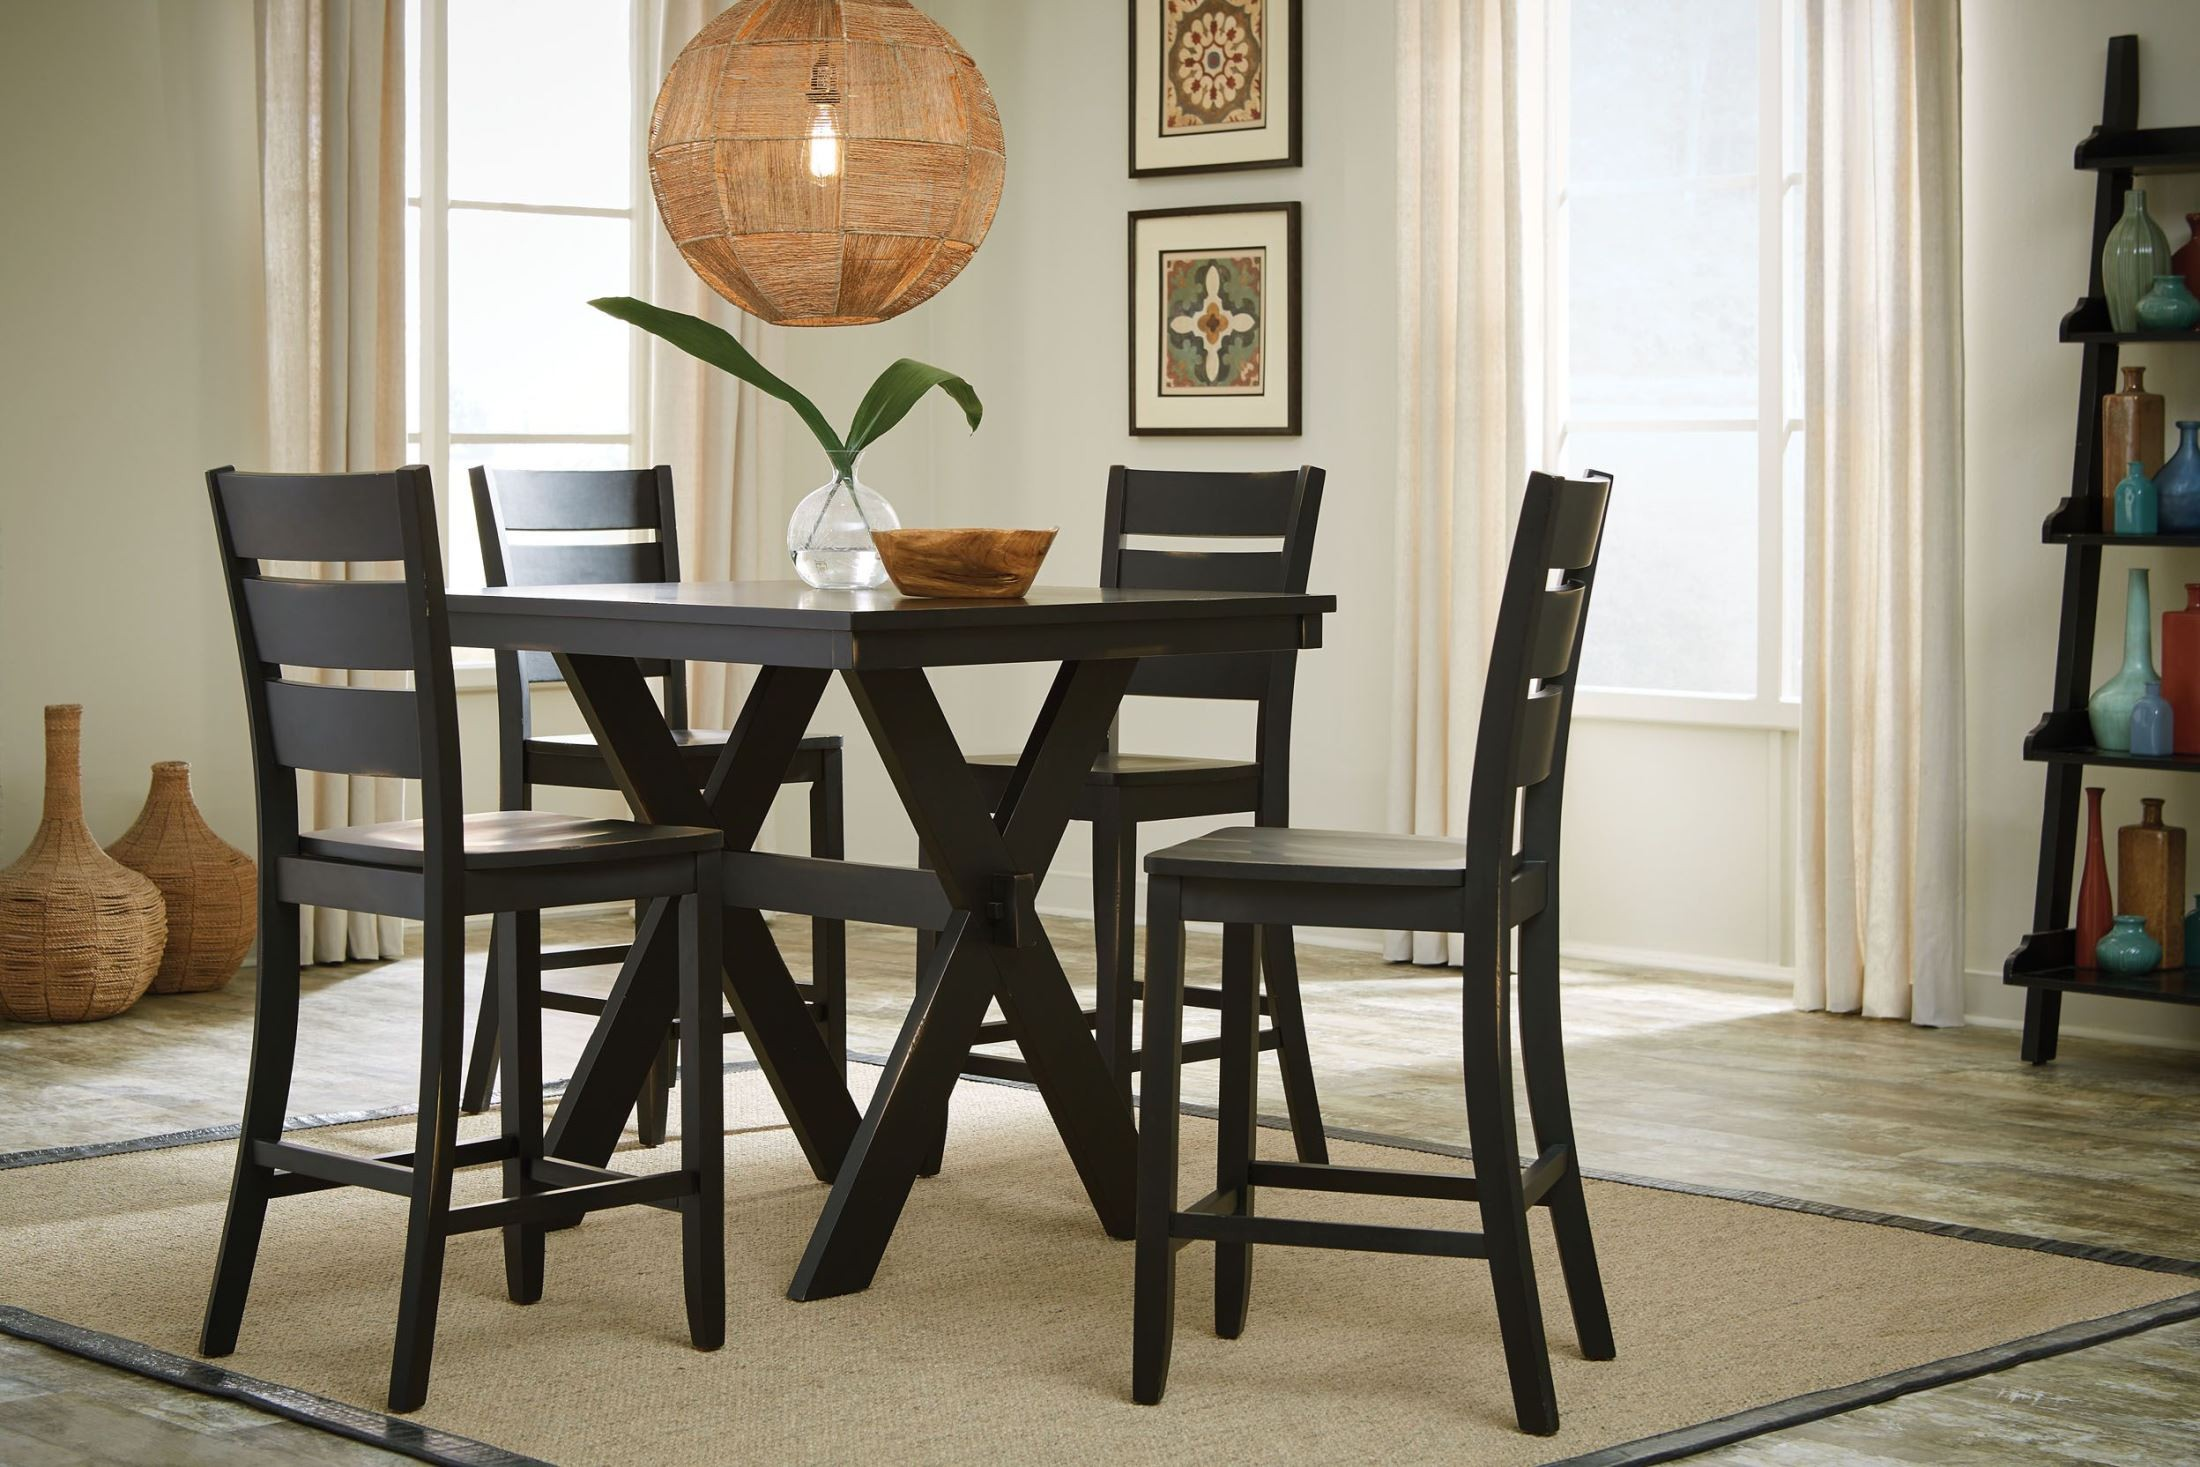 costa distressed black 5 piece counter height dining room set 11672